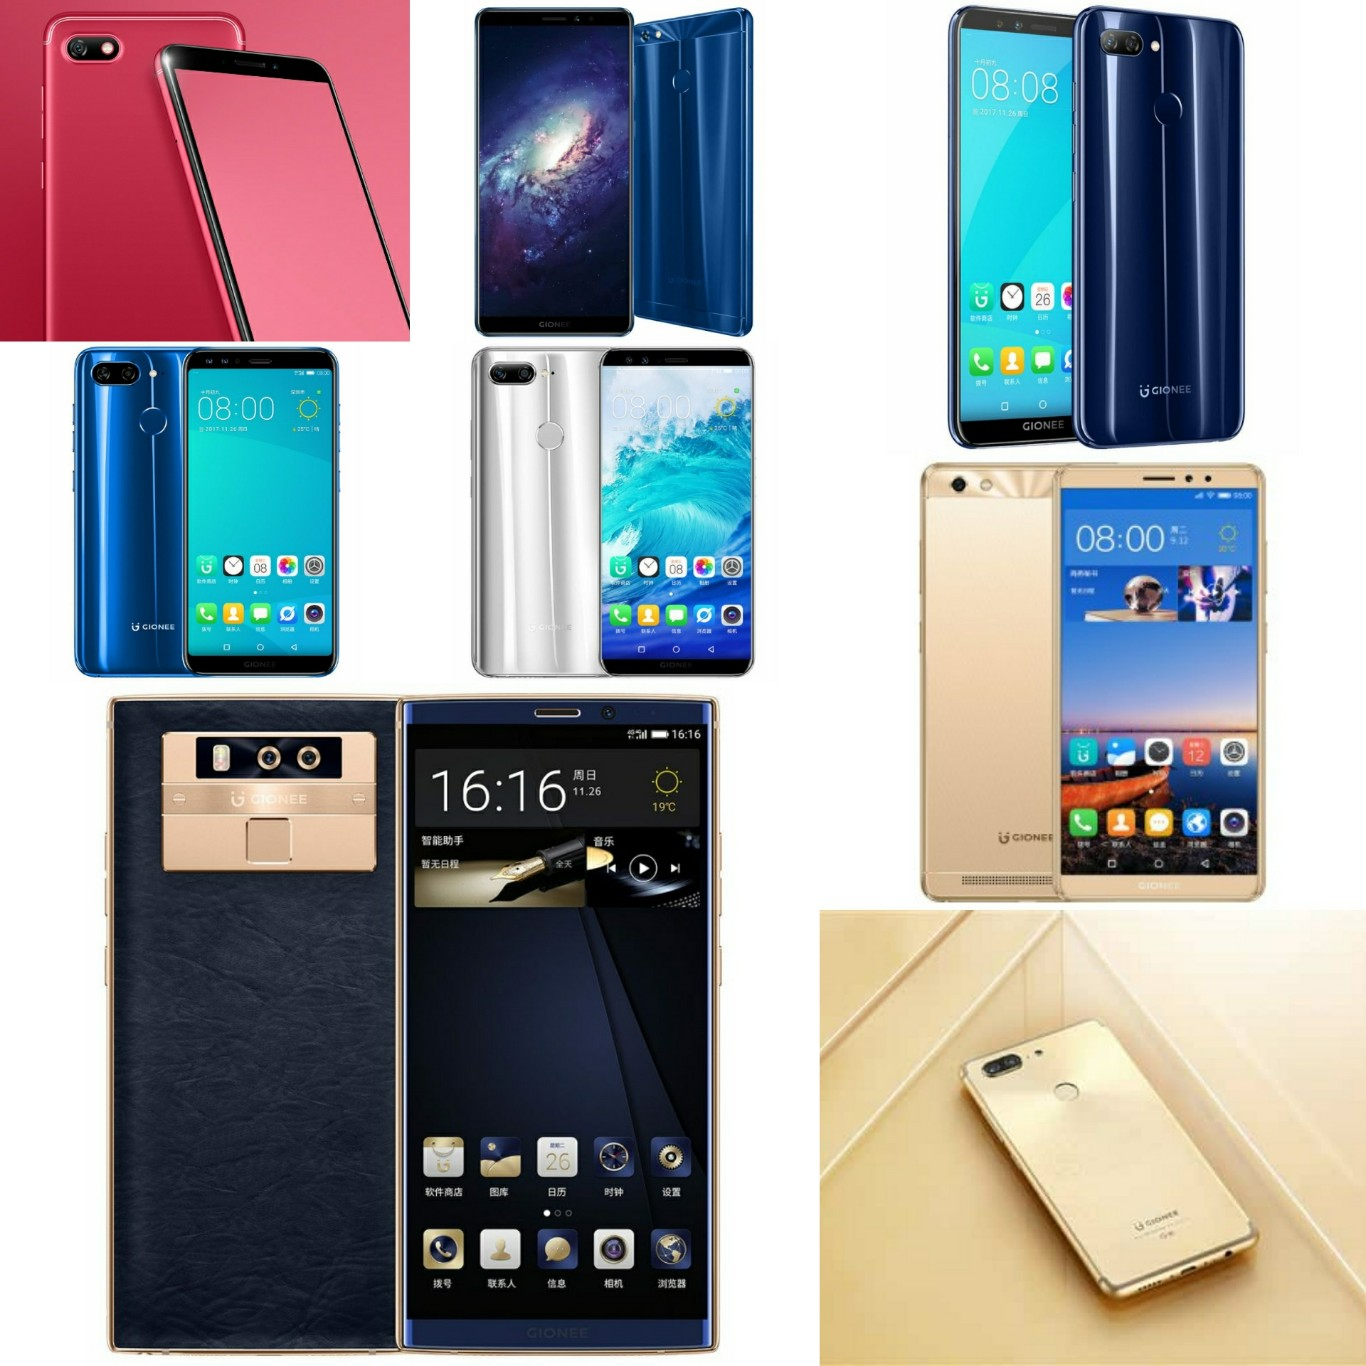 https://www.androidheadlines.com/wp-content/uploads/2017/11/Gionee-8-smartphones-launch-1.jpg